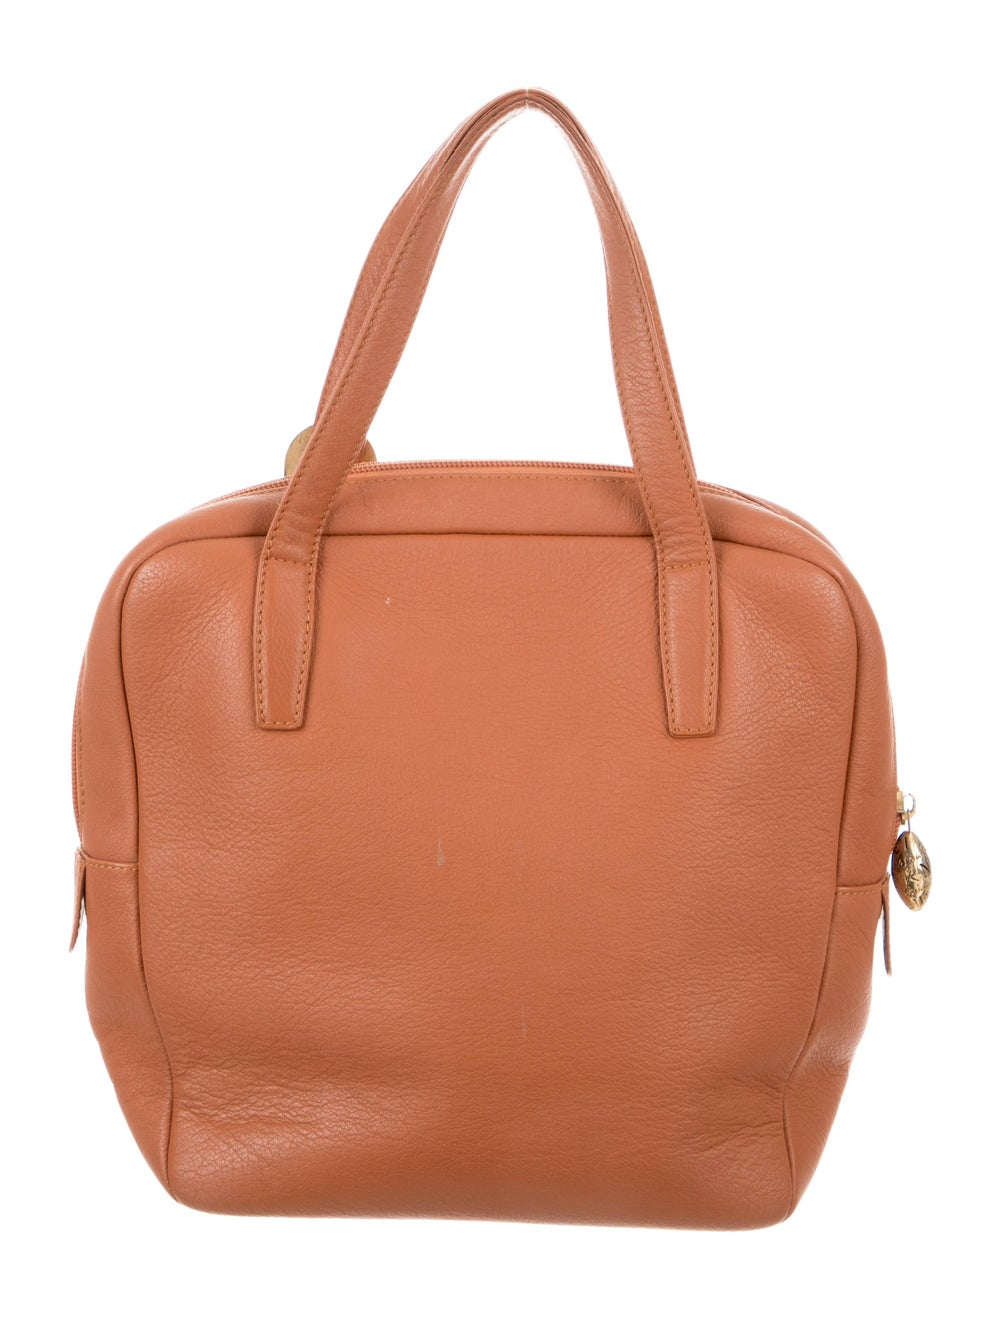 Nina Ricci Leather Handle Bag Brown - image 4